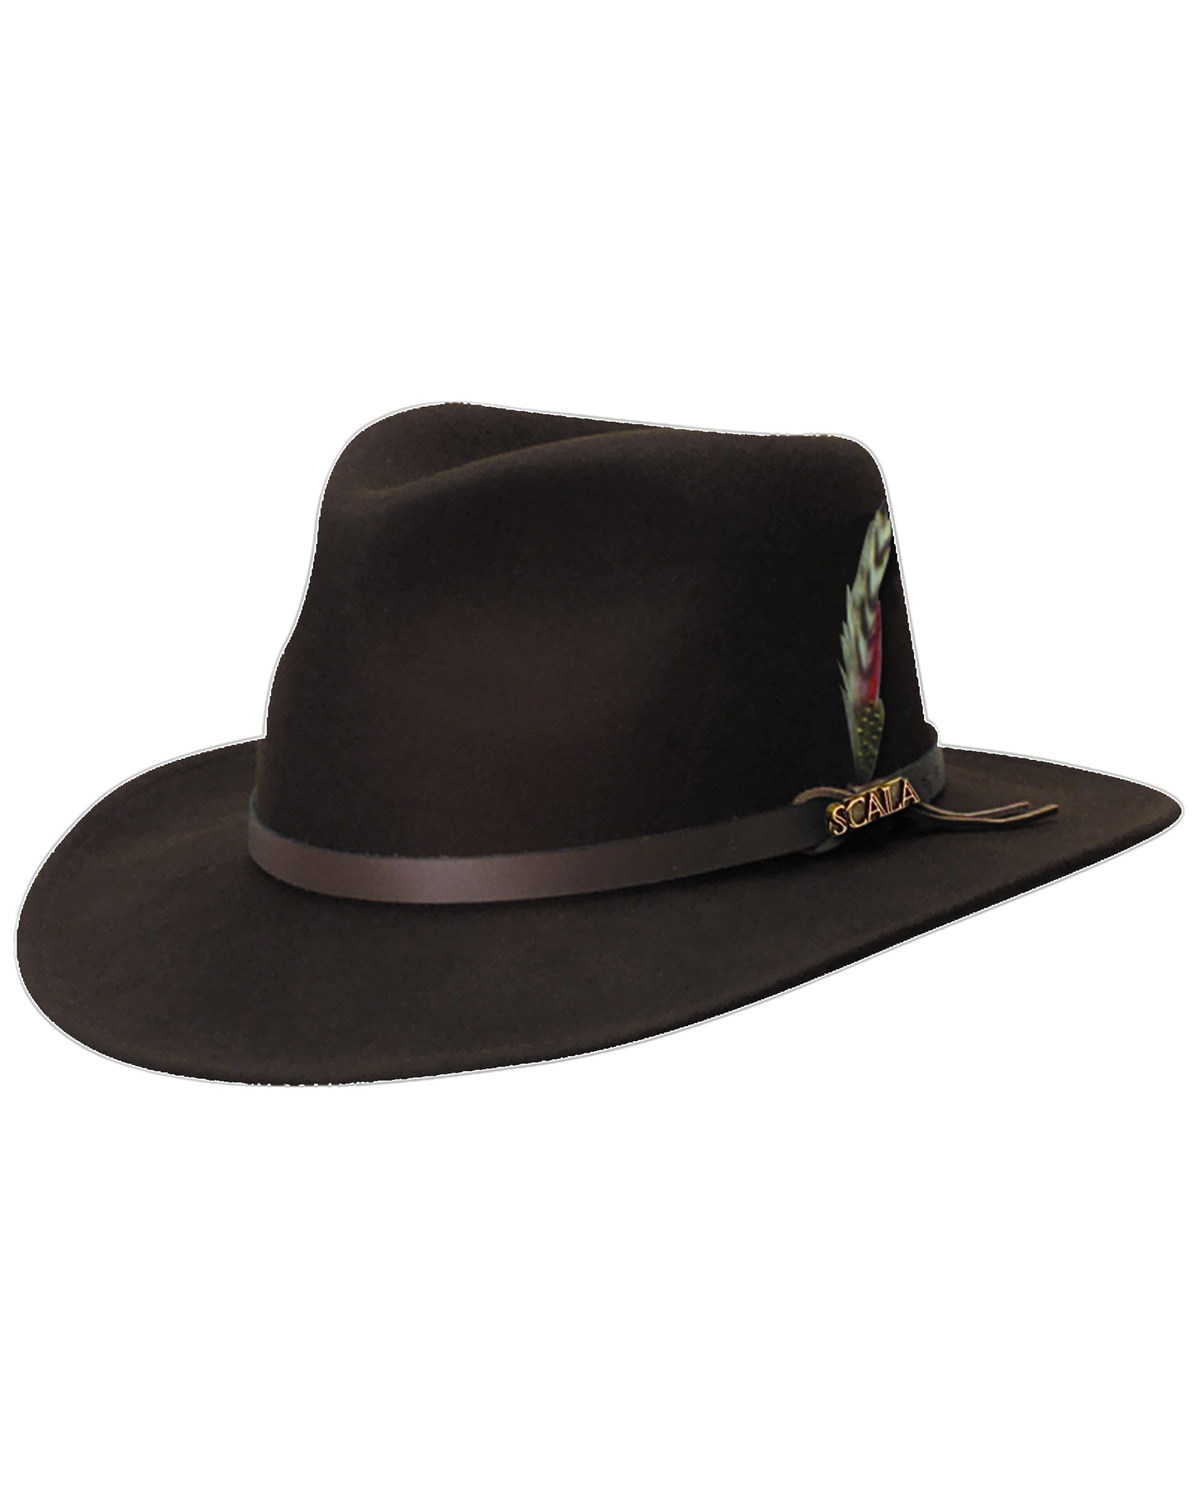 45c5c0df131 Scala Men s Chocolate Brown Crushable Wool Felt Outback Hat